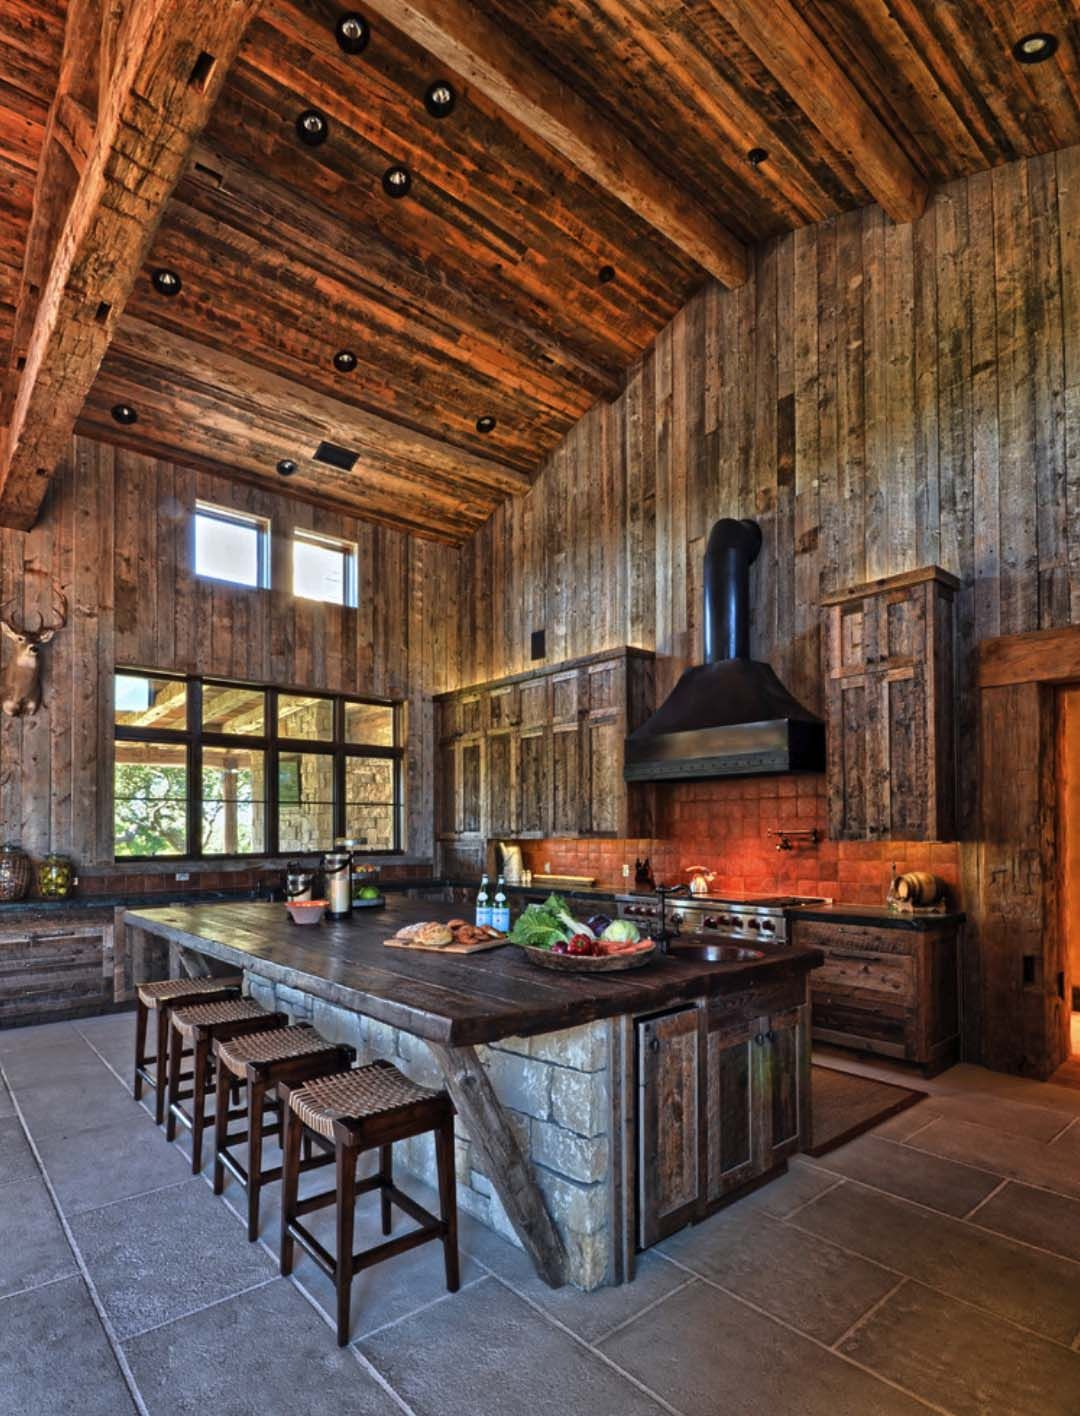 Modernrustic barn style retreat in Texas Hill Country